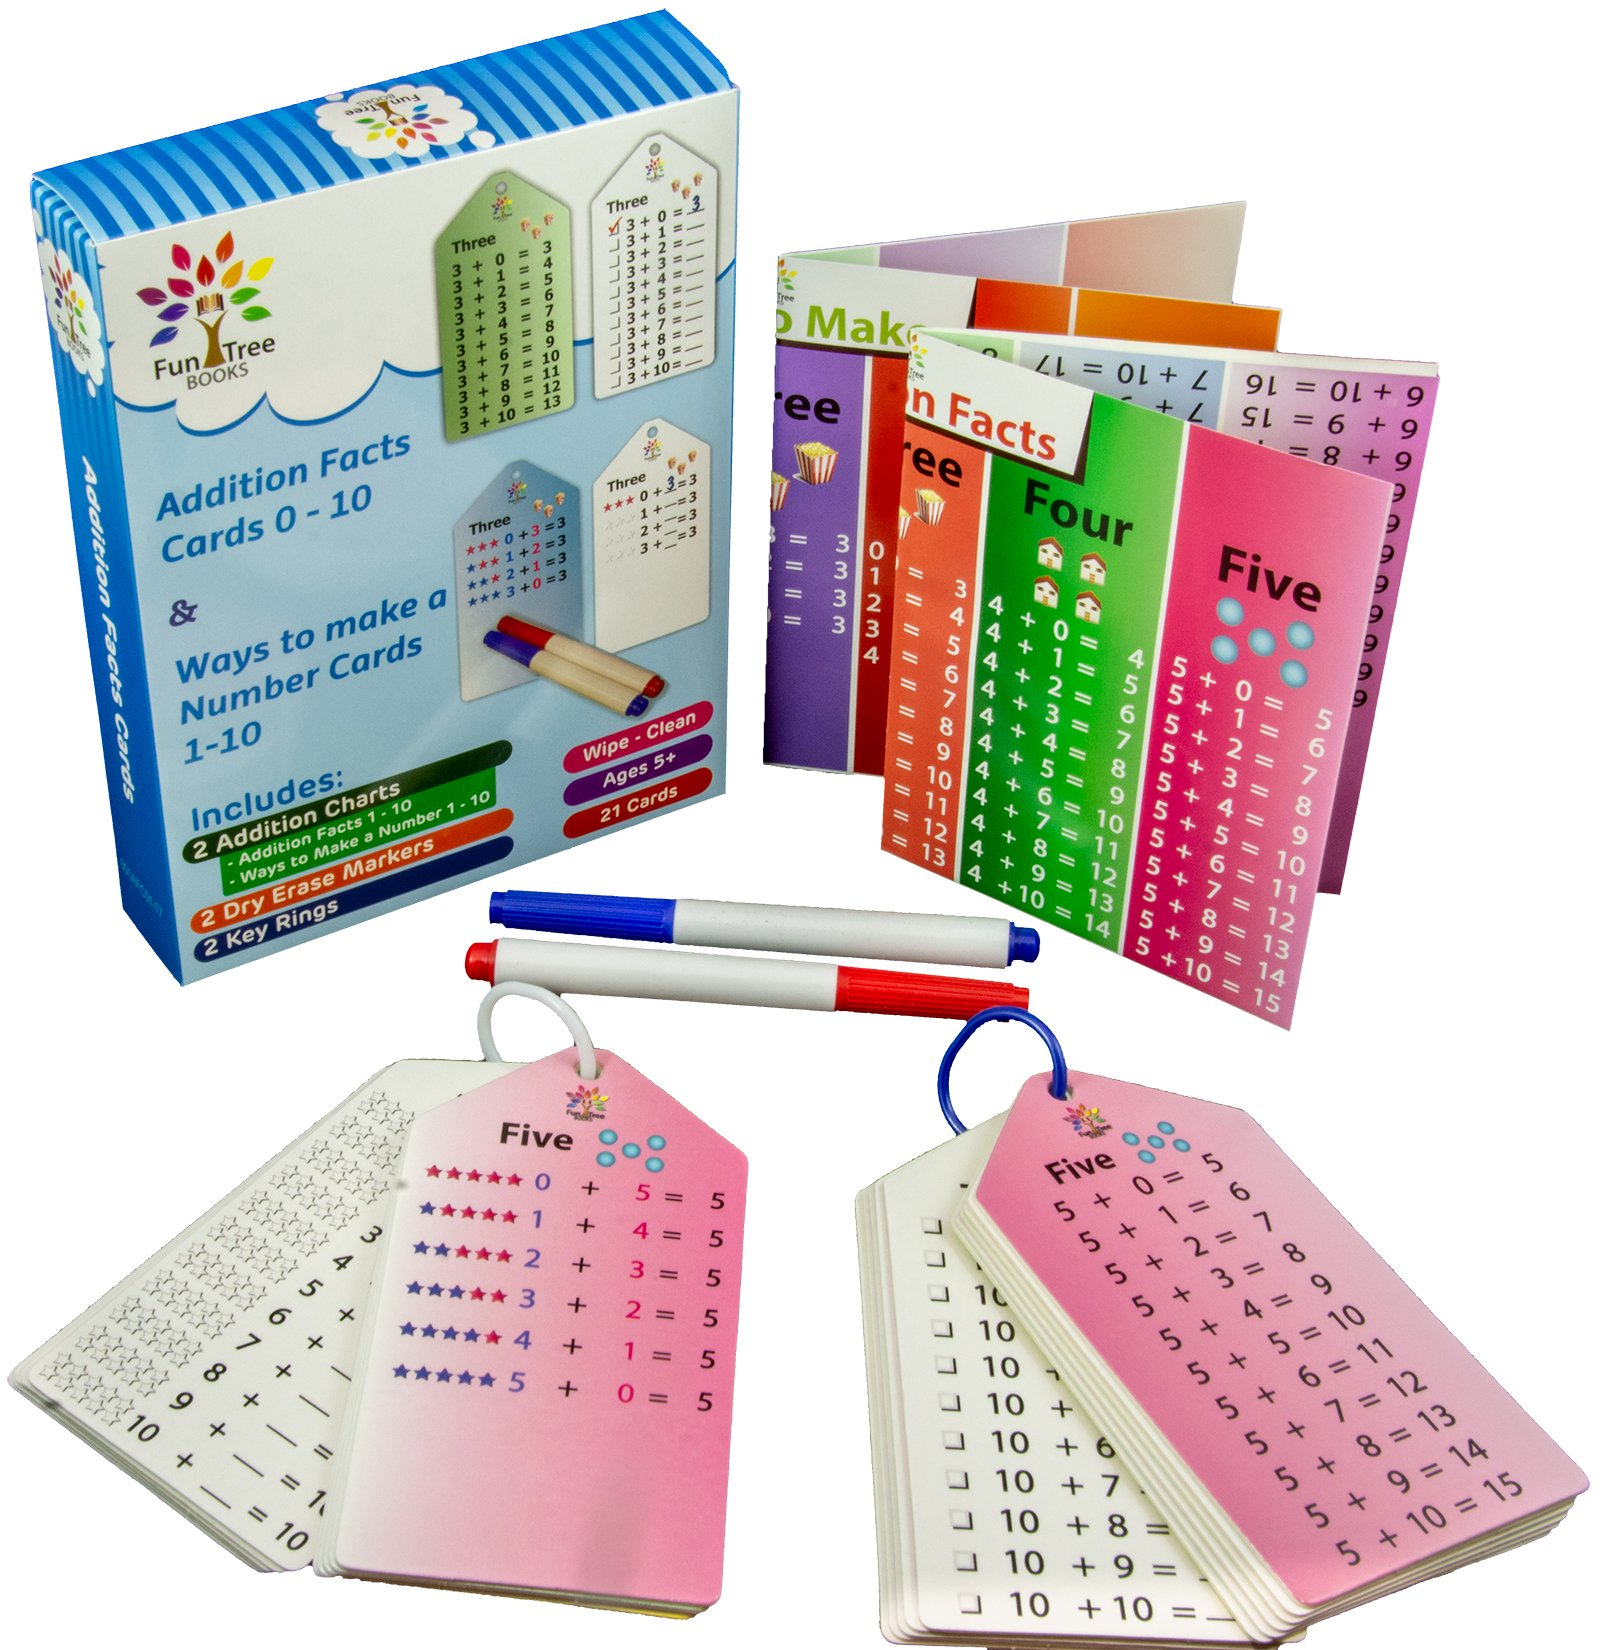 Fun Tree Books 2 Addition Flash Cards Sets with 2 Key Rings and Bonus 2 Markers and 2 Charts or Posters